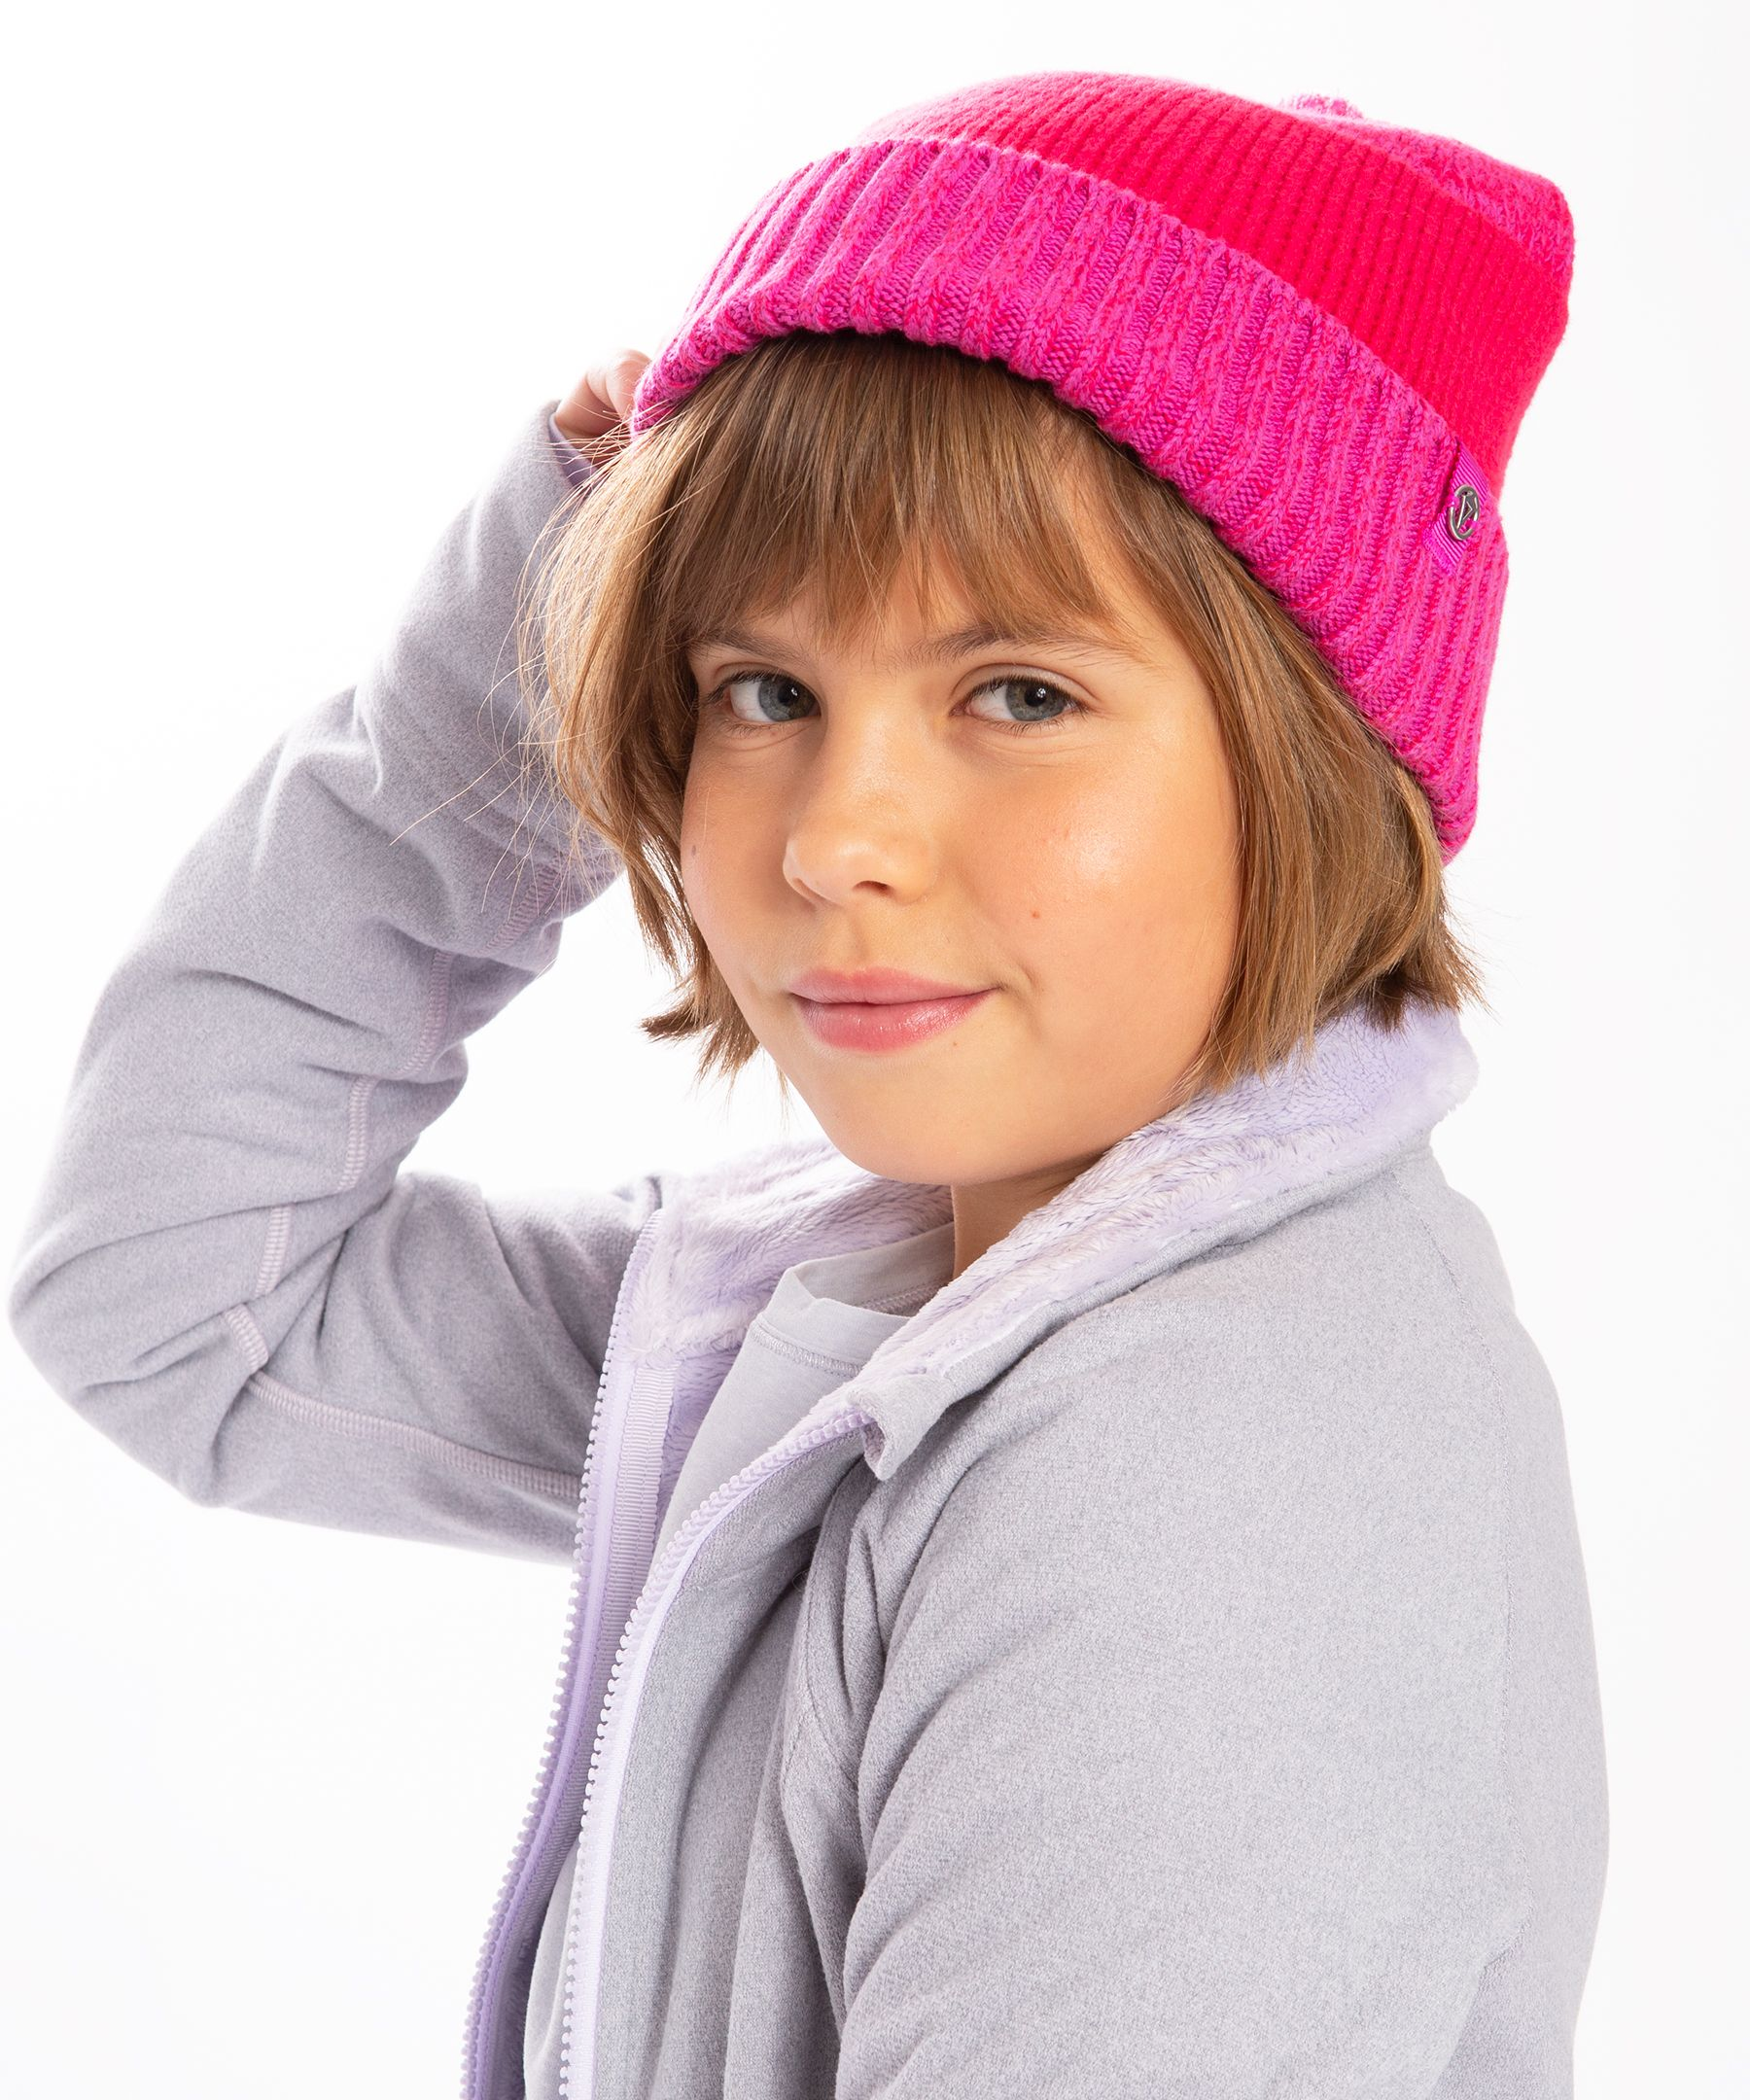 Lock in the warmth and cover  your head on cold, chilly days  with this soft toque.